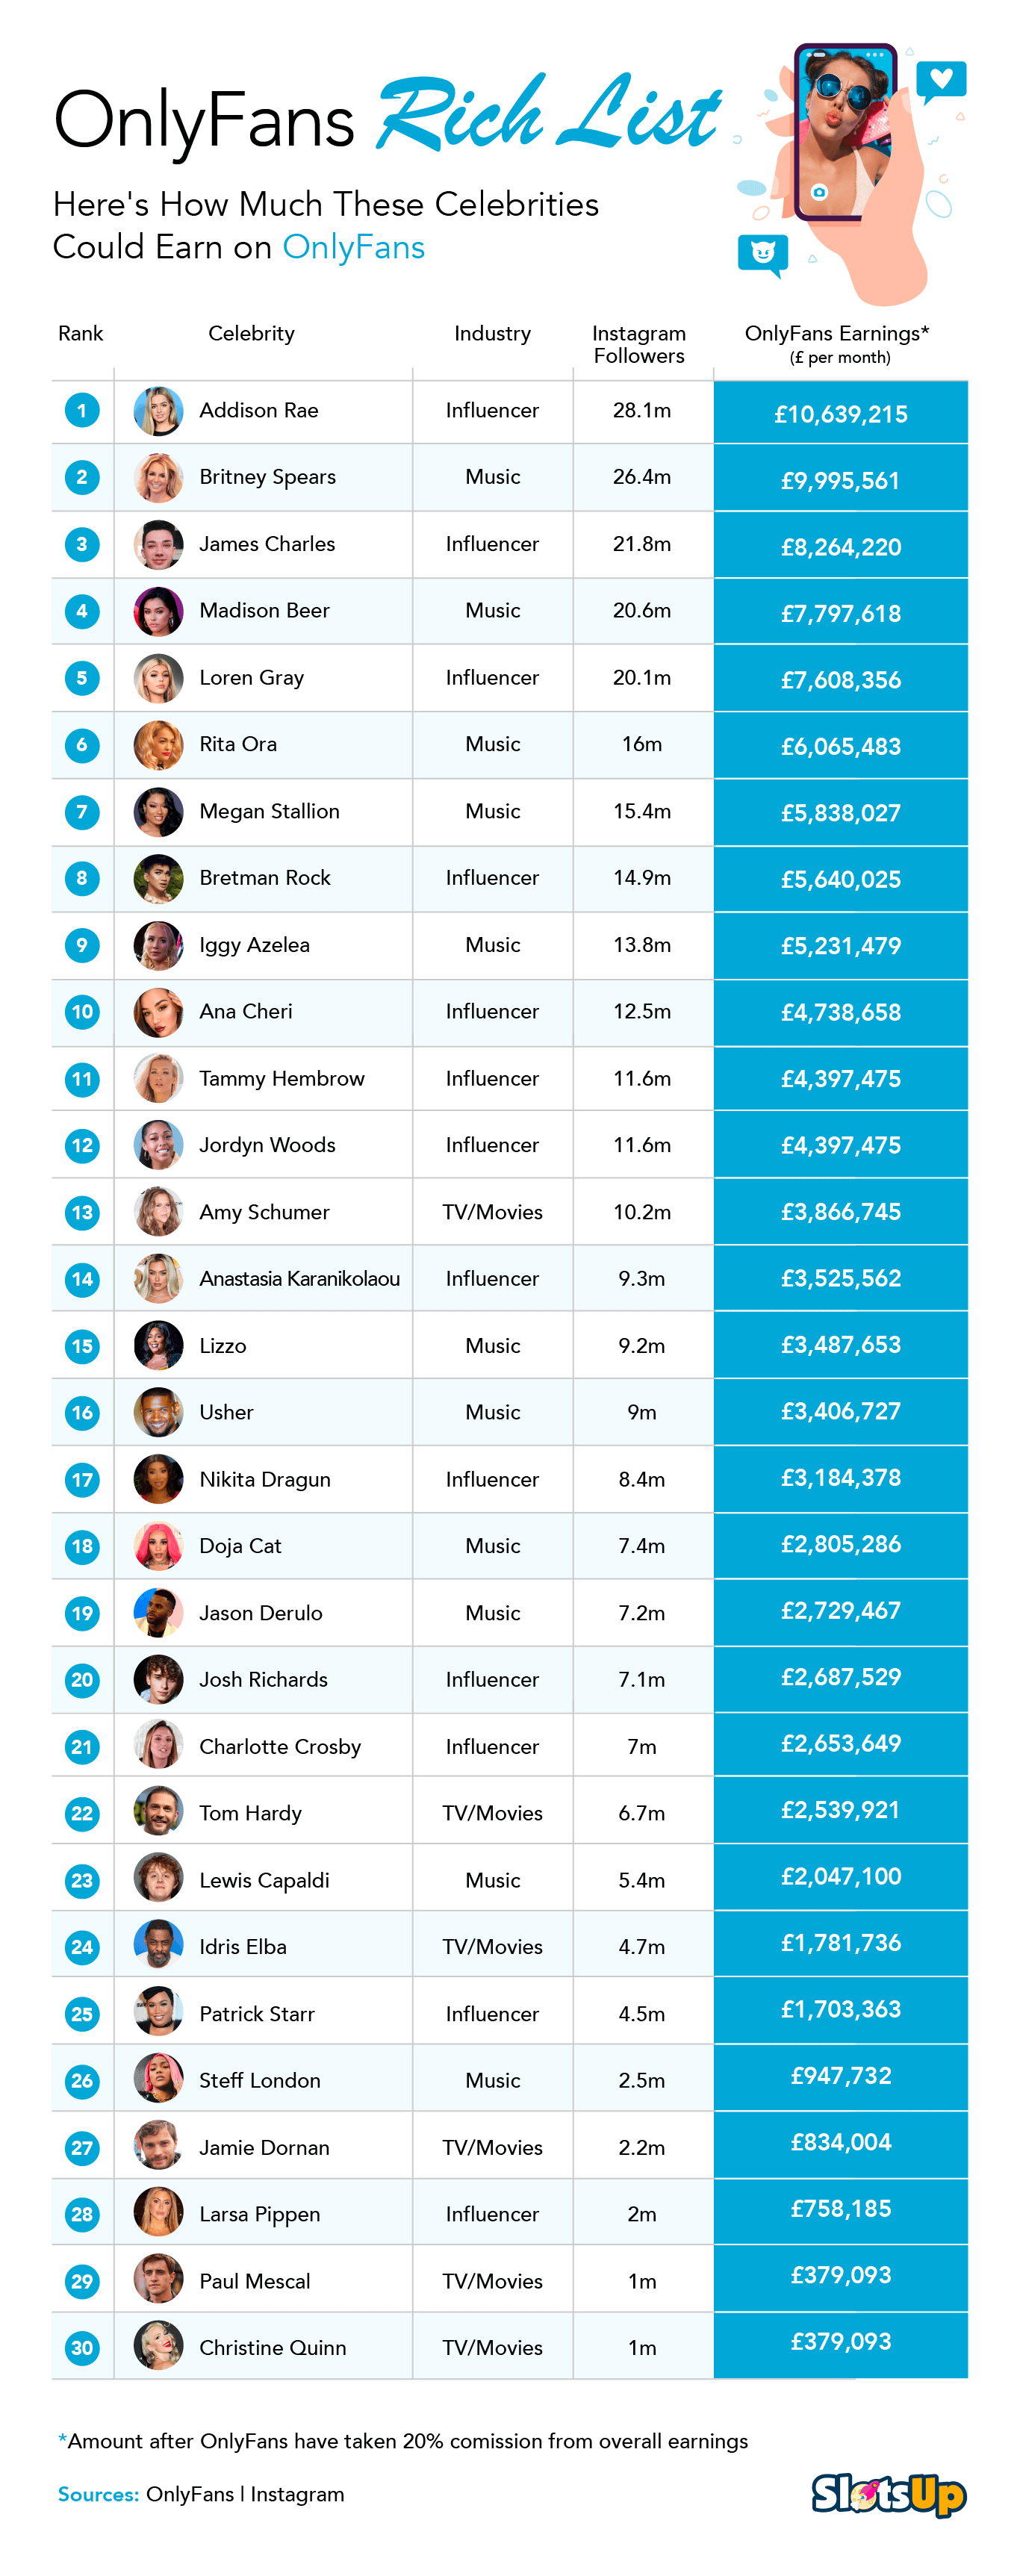 HOW MUCH CELEBRITIES COULD EARN USING ONLYFANS